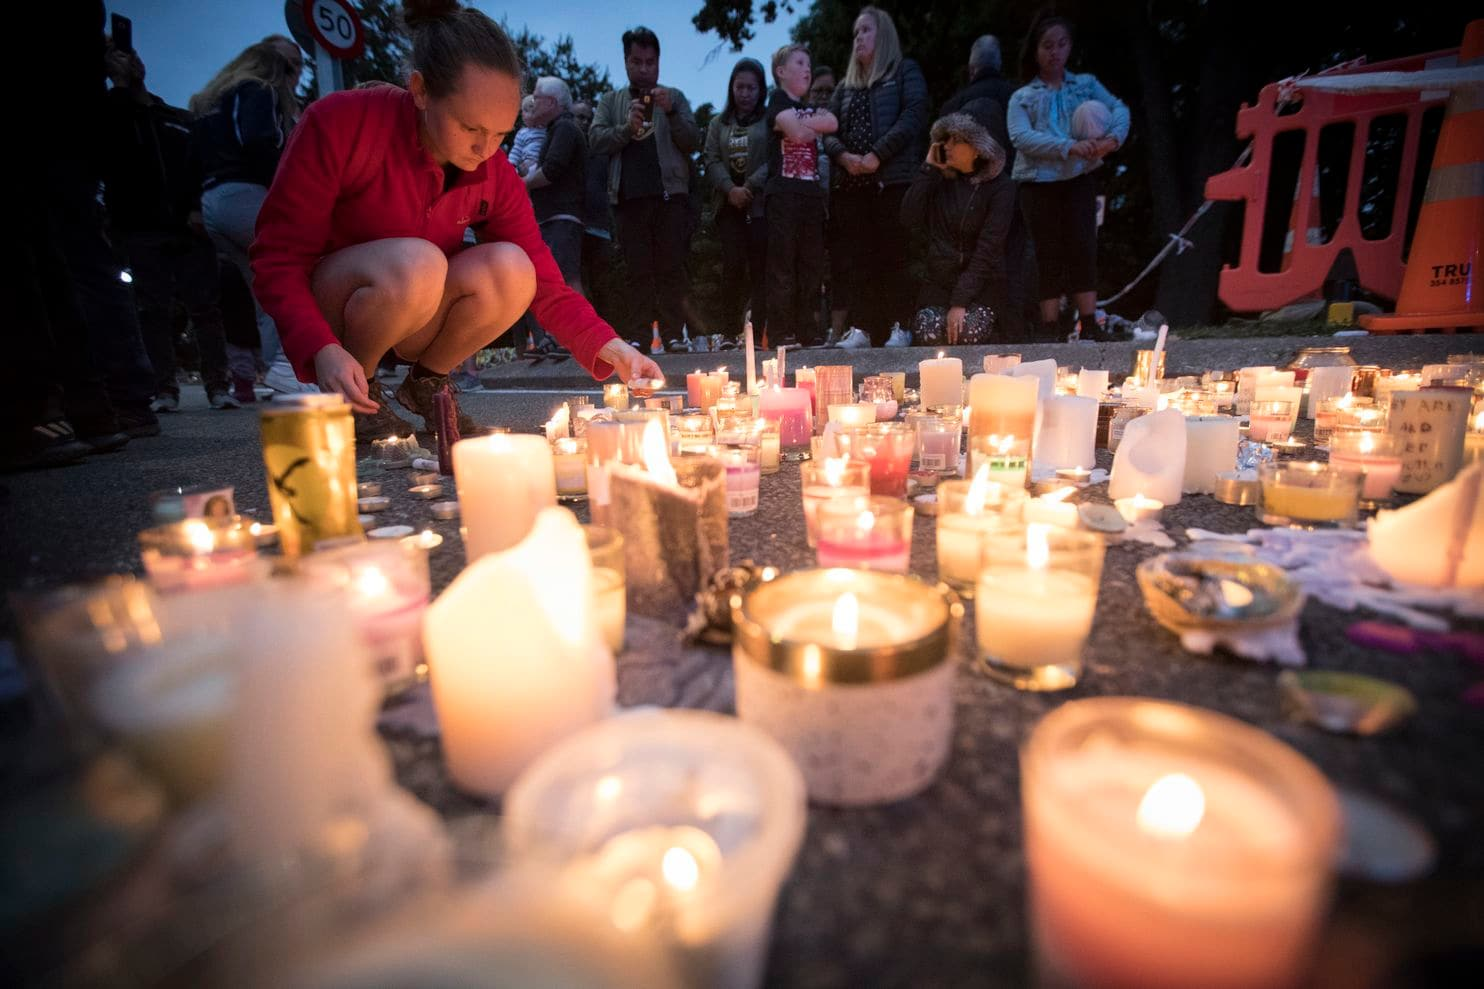 Their fellow congregants died in Pittsburgh. Now Jews are supporting Muslims in New Zealand.